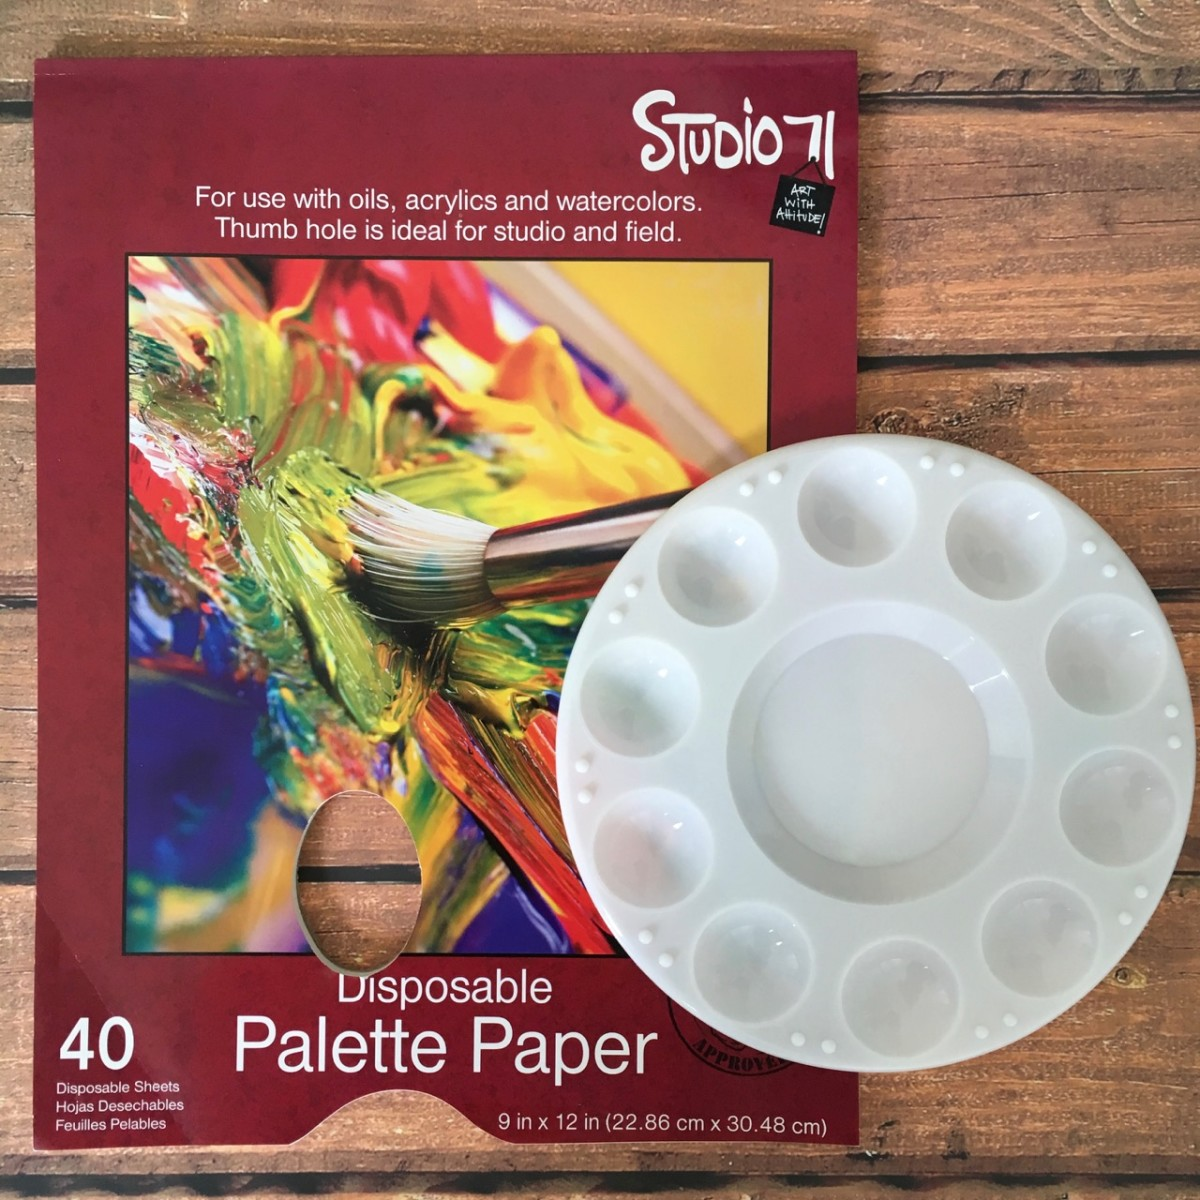 Palette Paper and Plastic Paint Palette